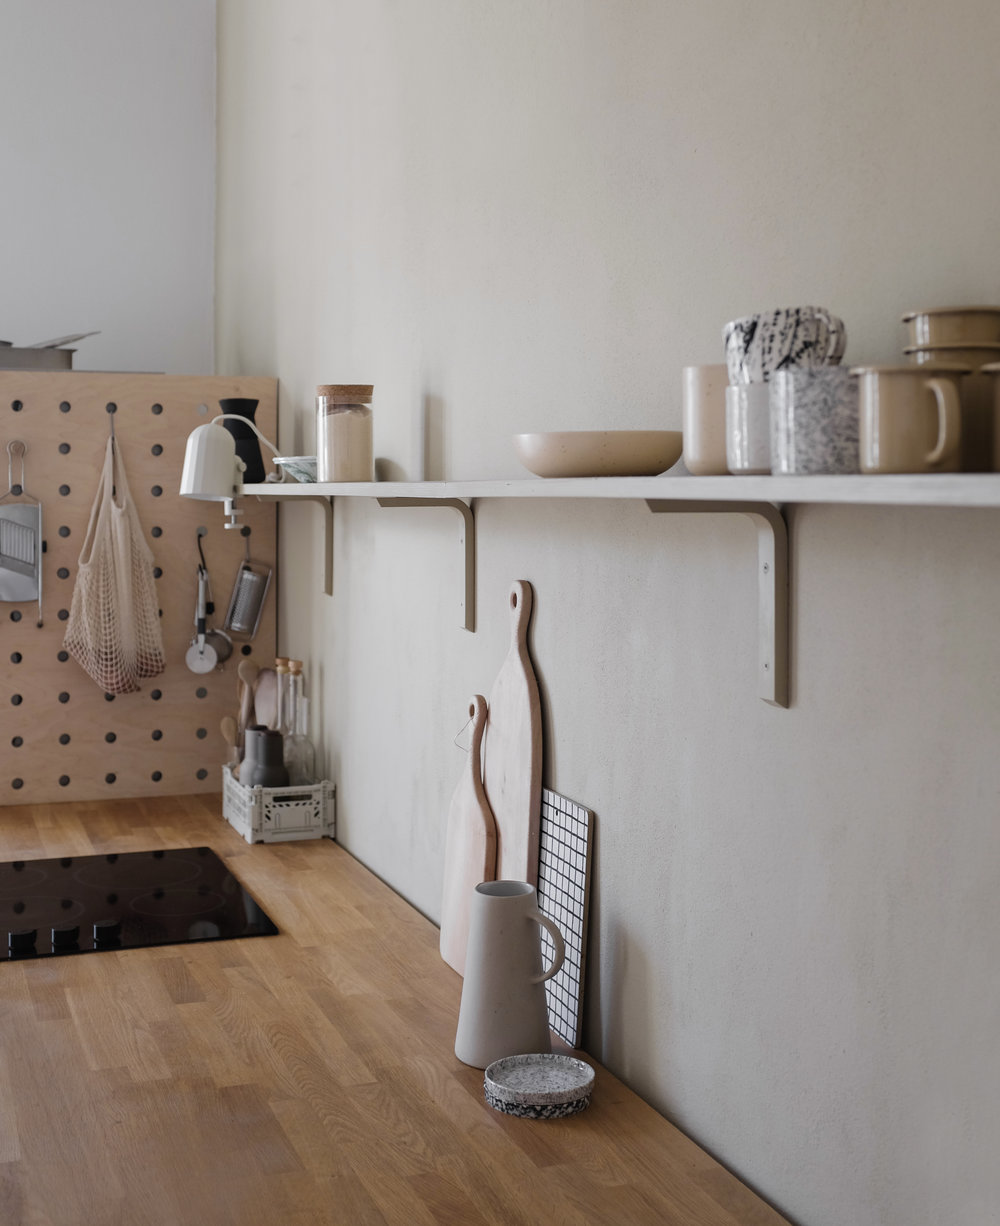 Tour the Hygge Home of Swantje Hinrichsen on cattledogs.info